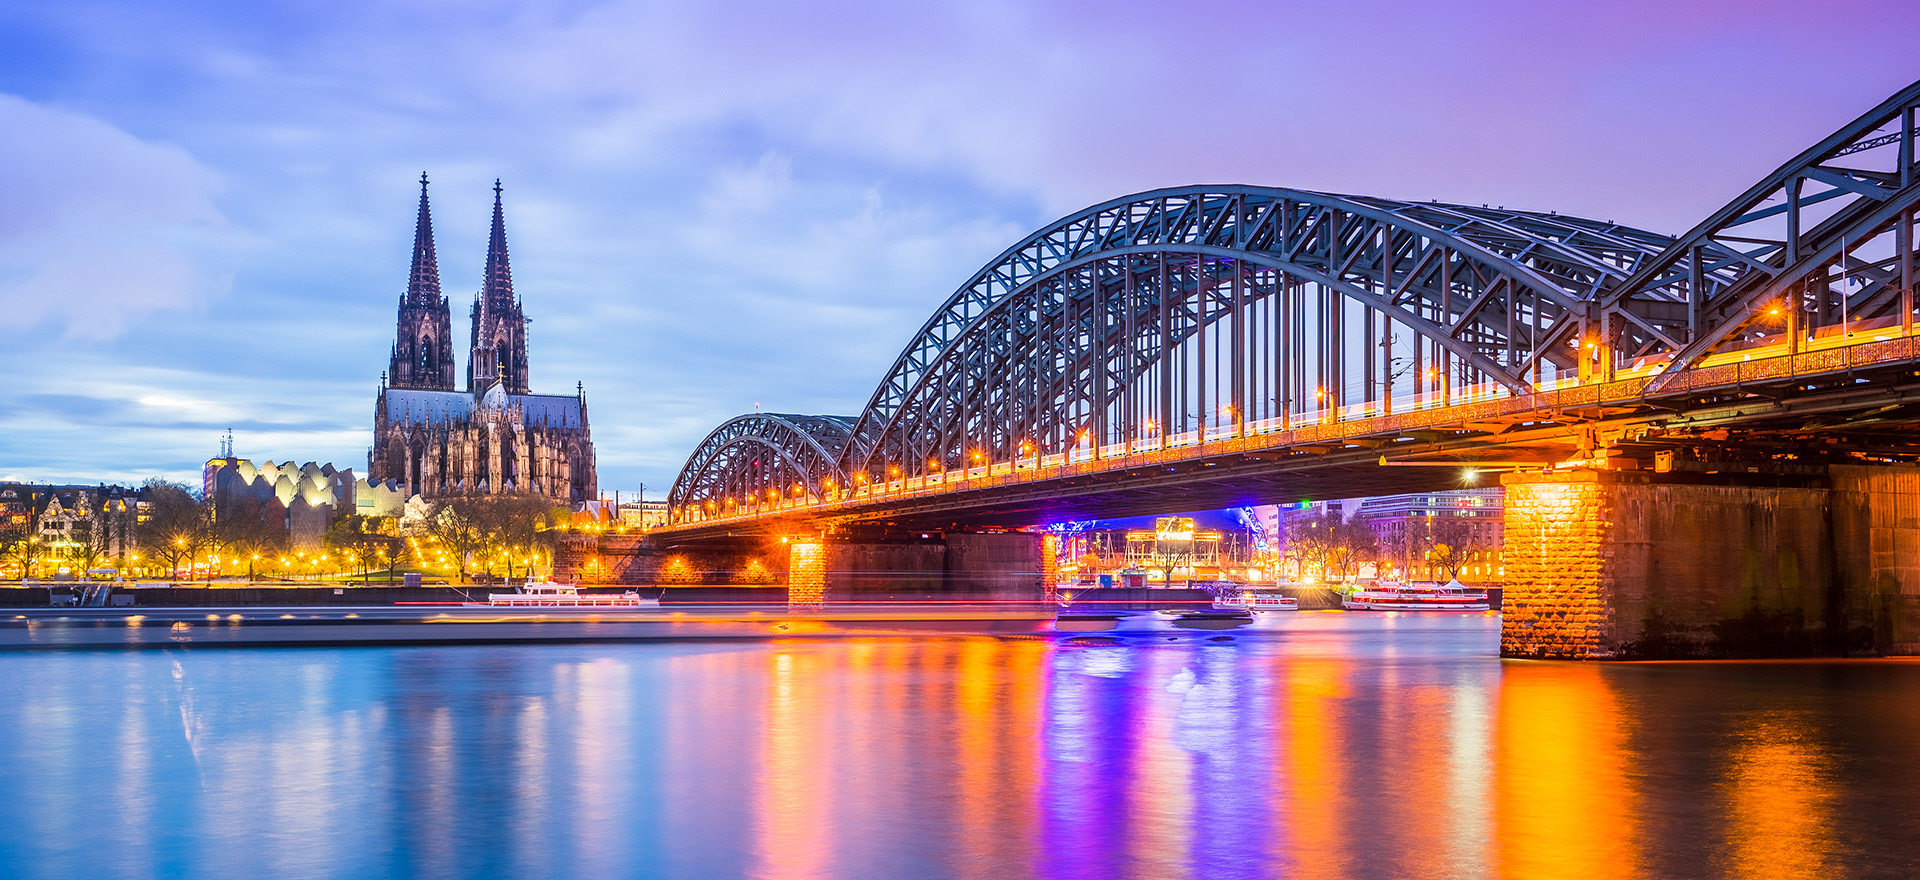 Cologne cathedral and bridge over the river at night